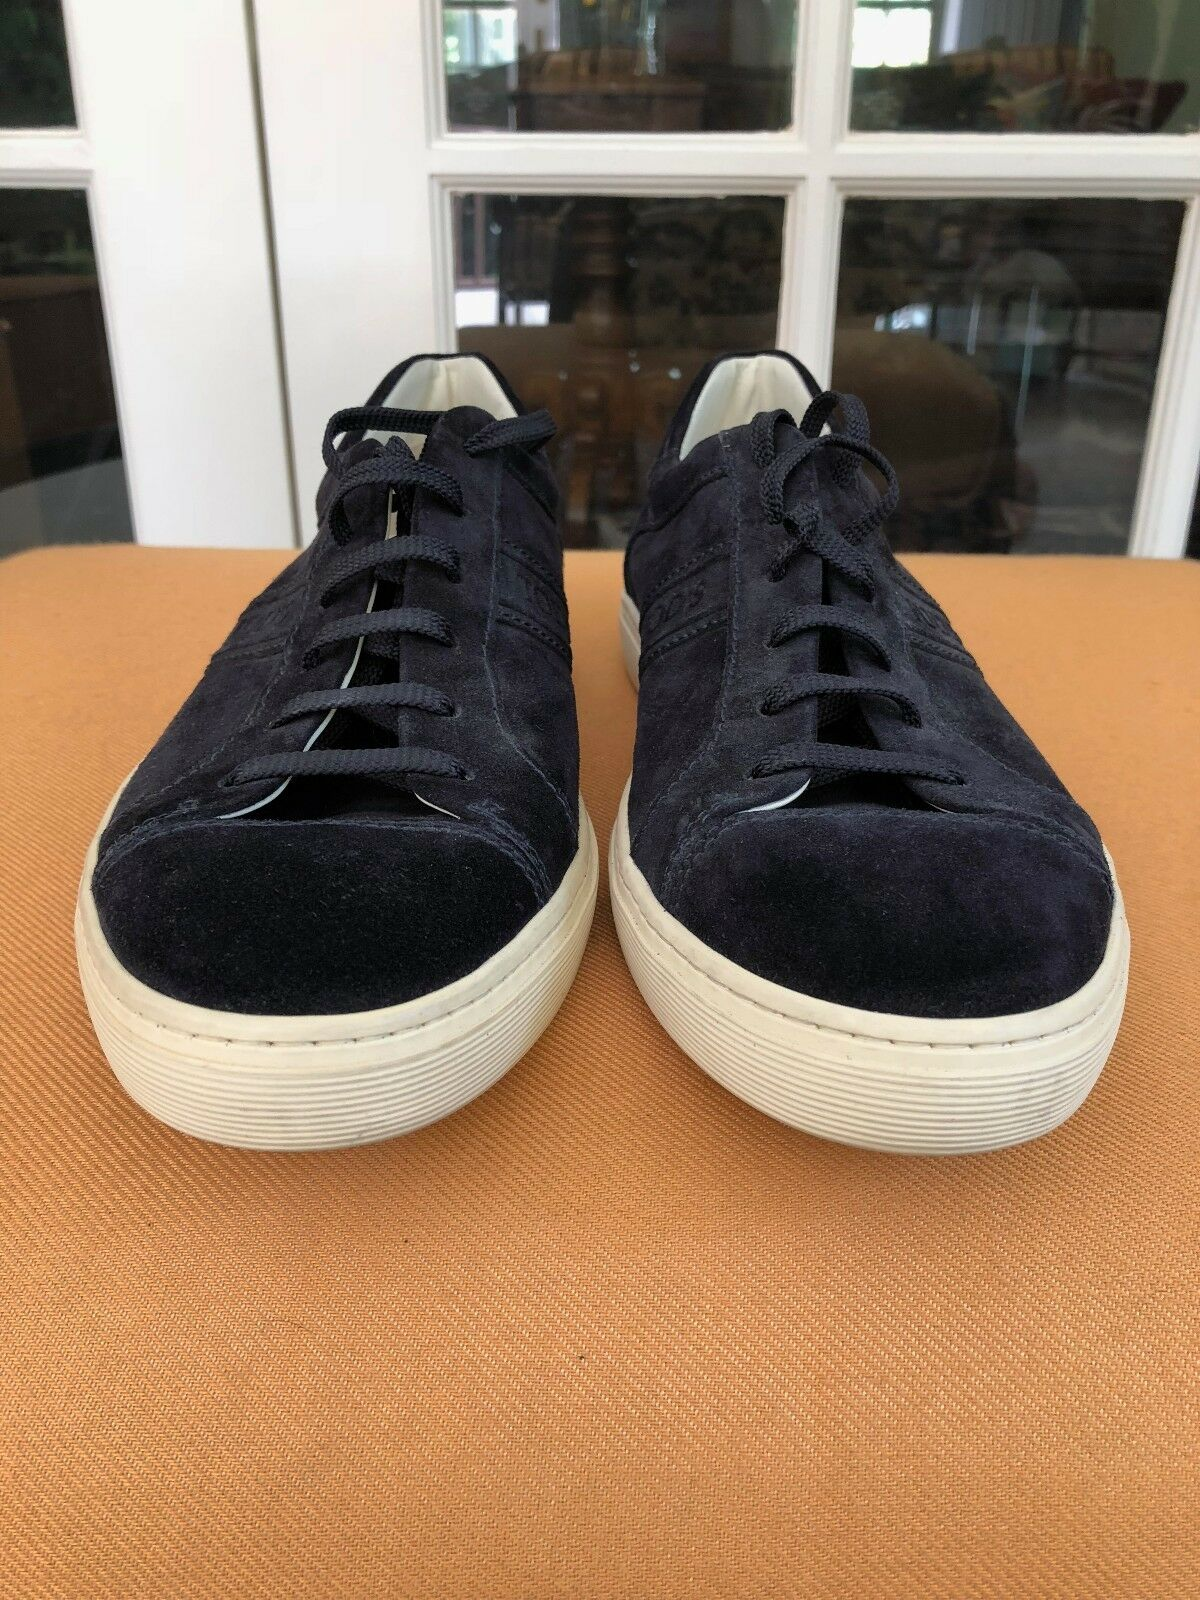 per offrirti un piacevole shopping online Tod's uomo 9.5 suede scarpe new made made made in   Felice shopping